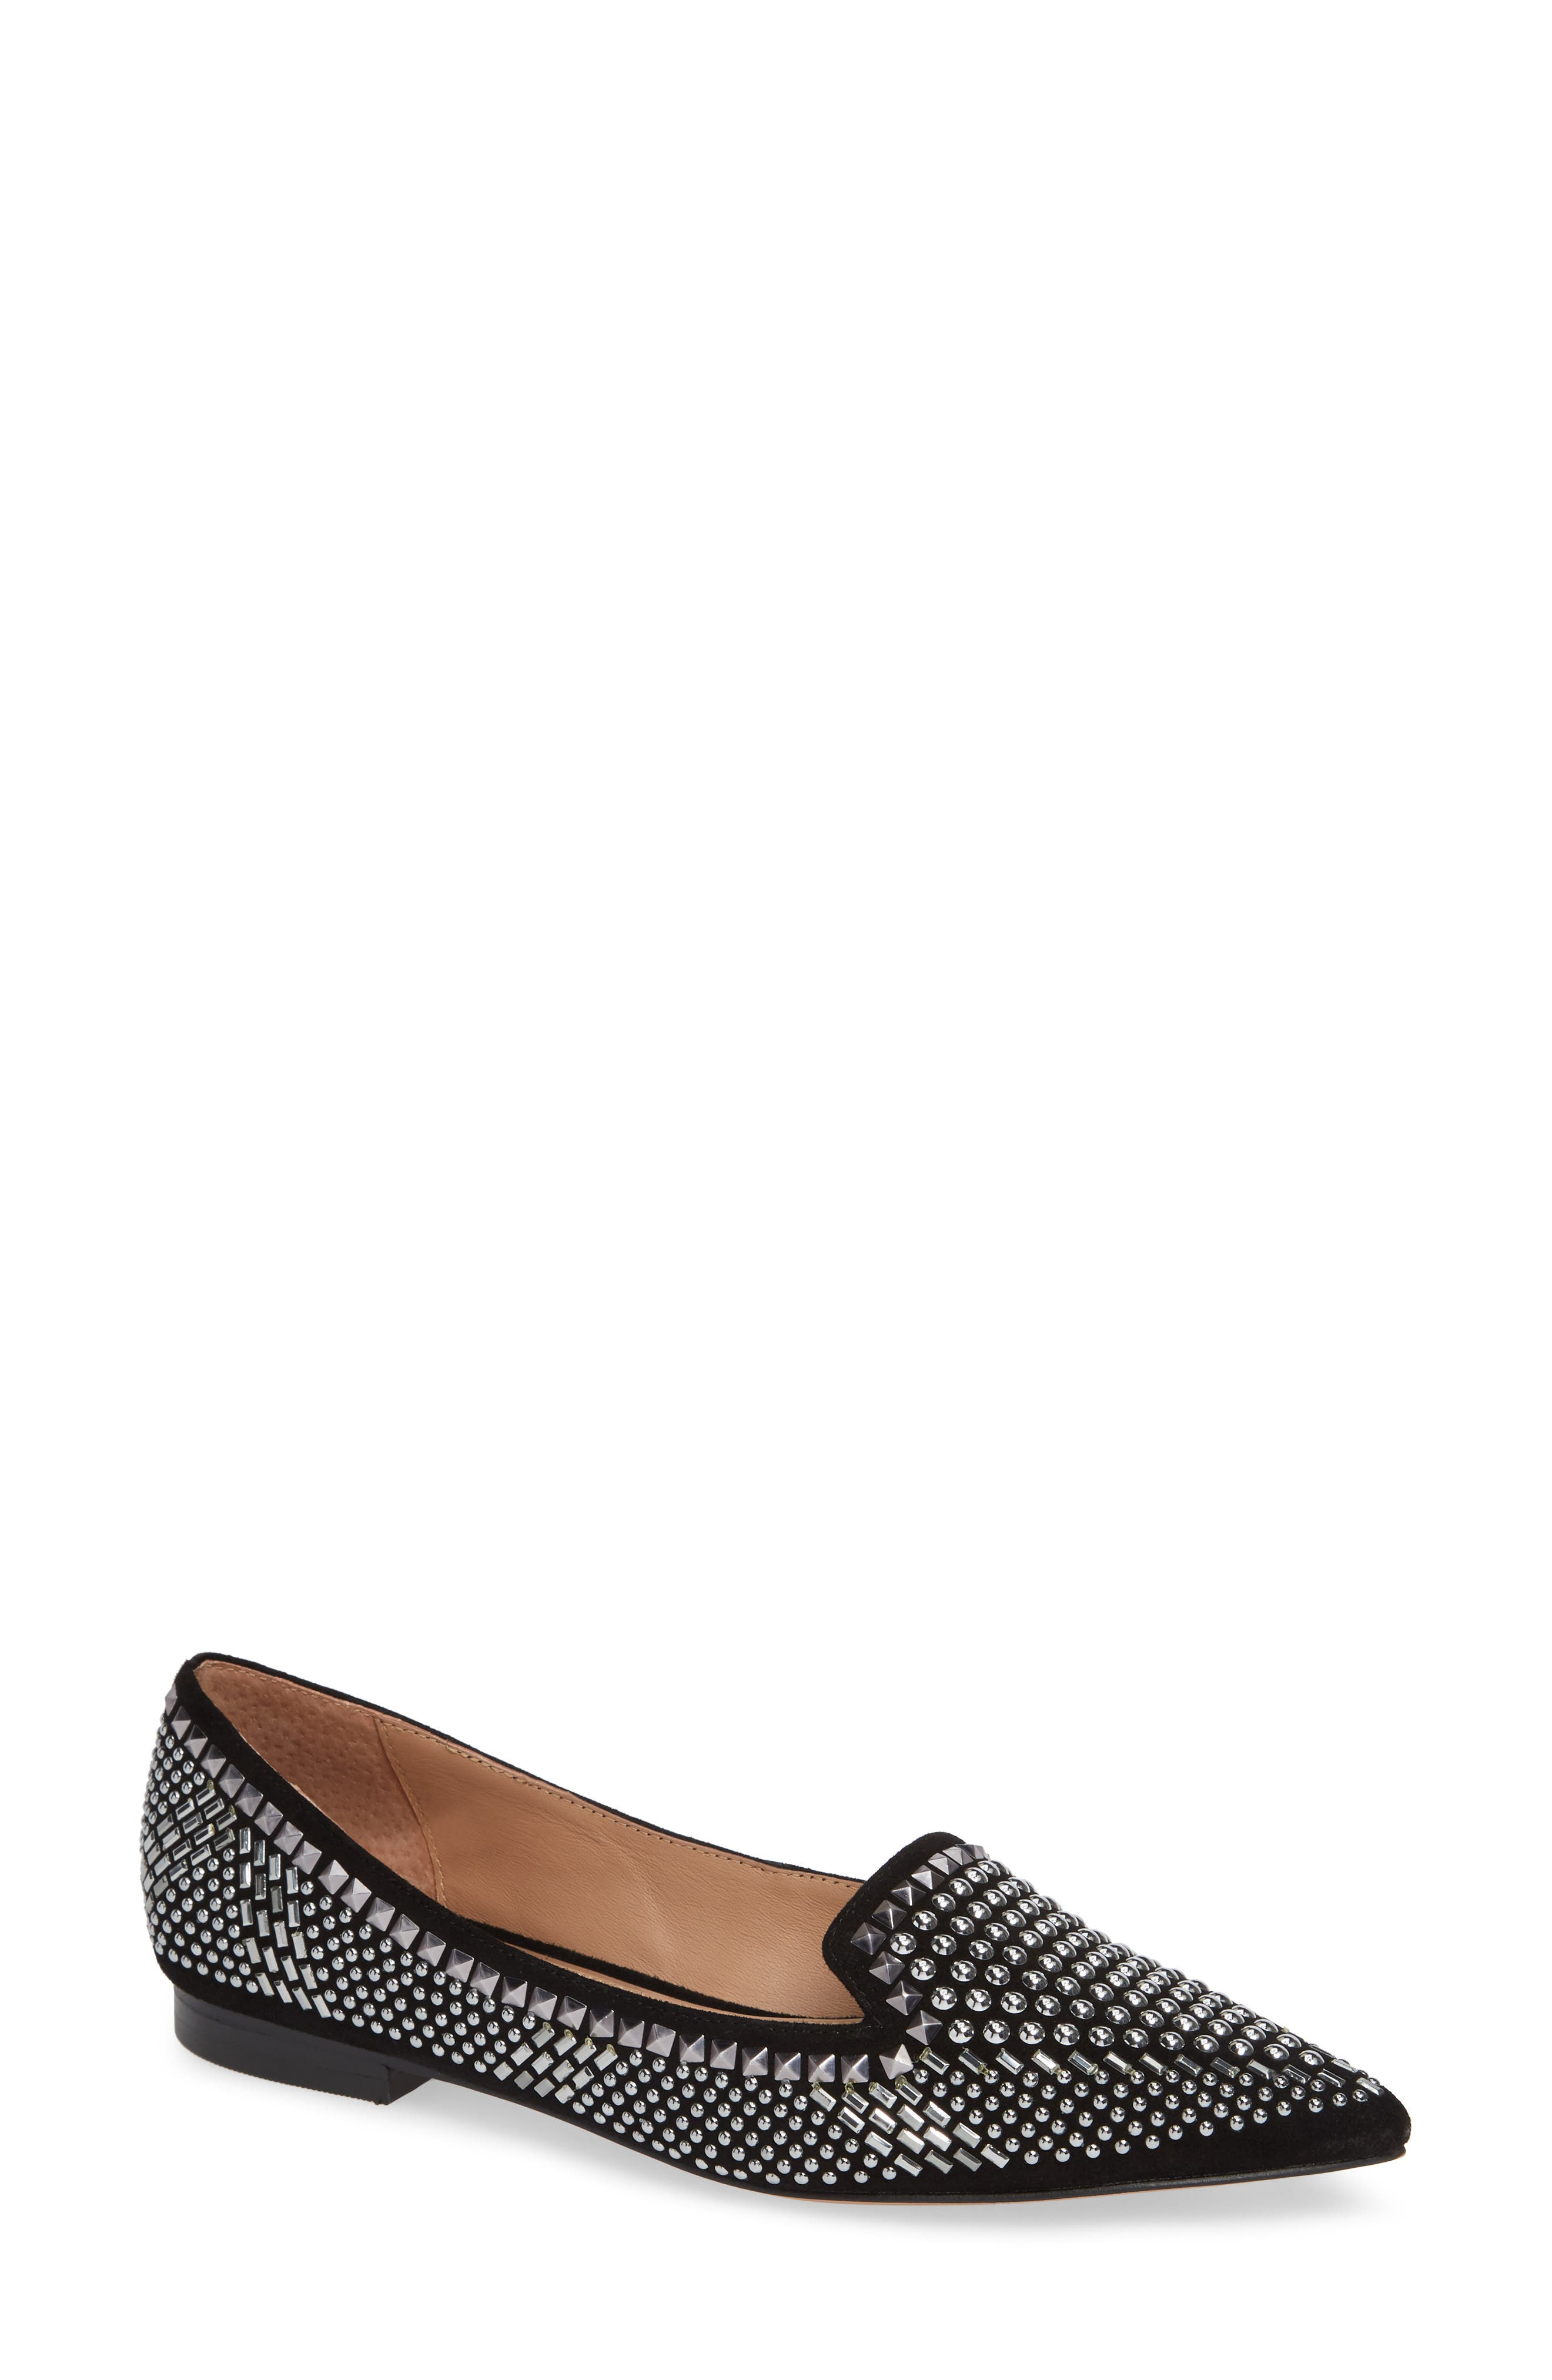 LINEA PAOLO Portia Studded Loafer, Main, color, BLACK SUEDE